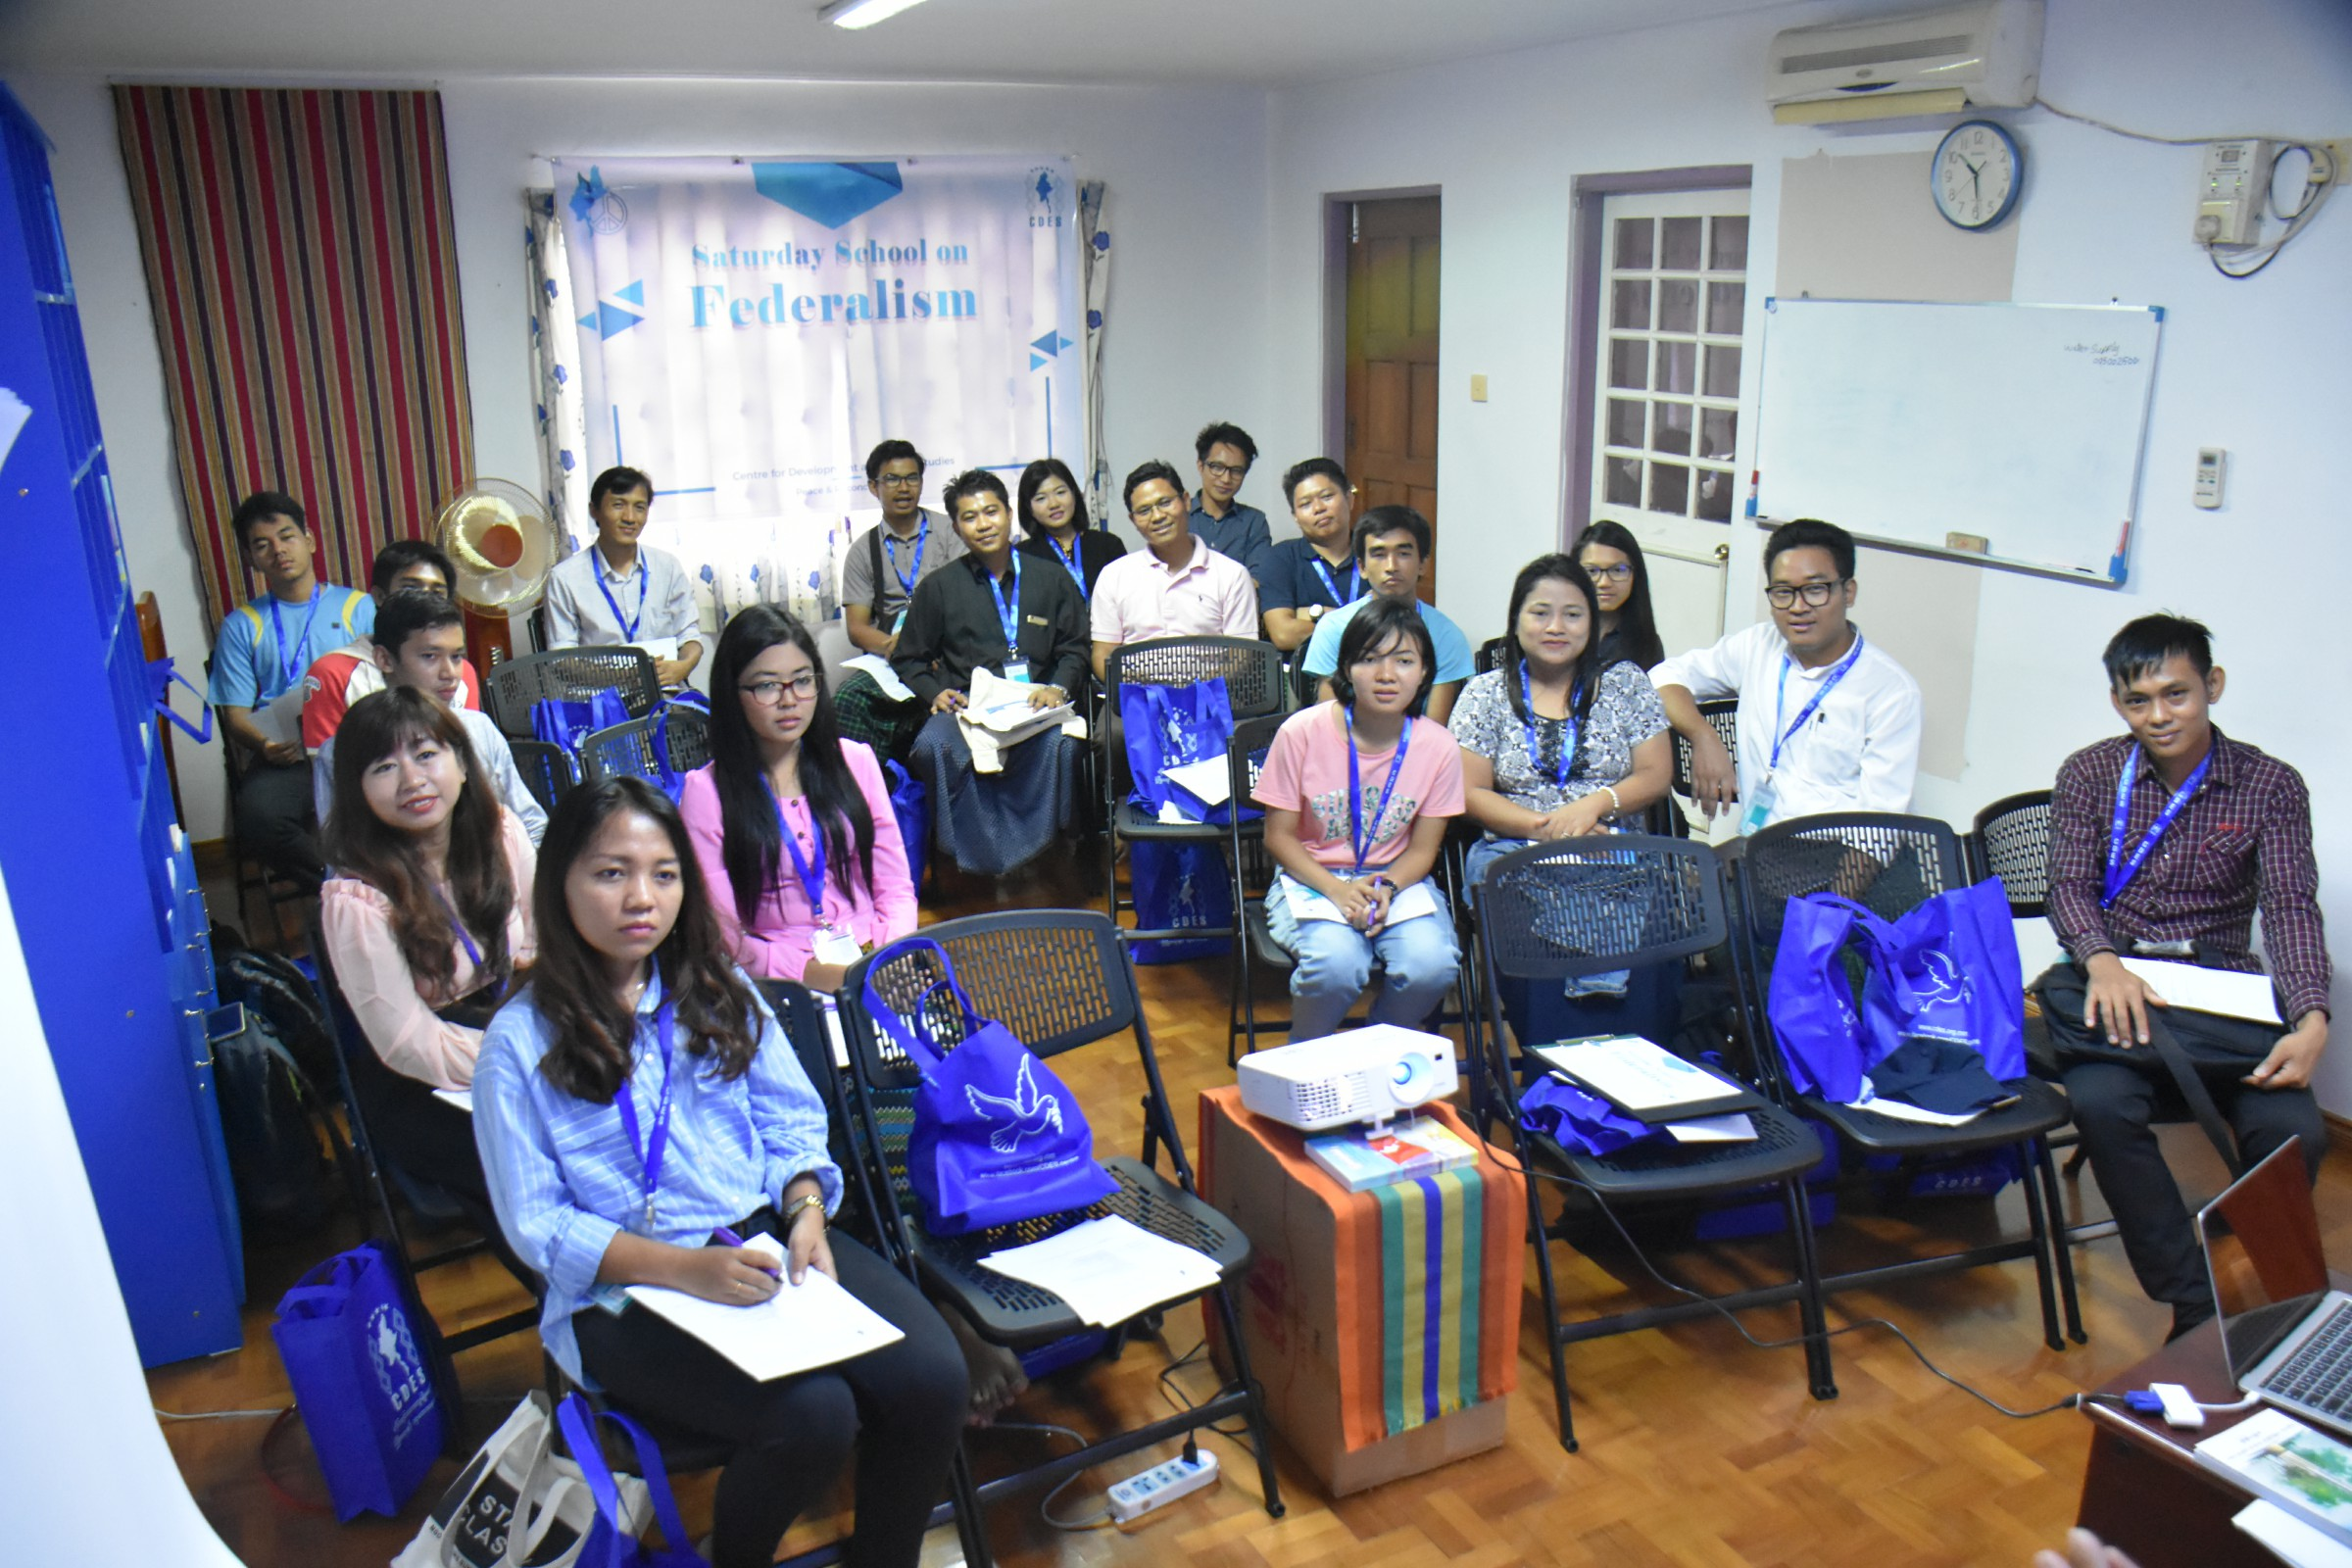 Saturday School of Federalism (Batch-1)